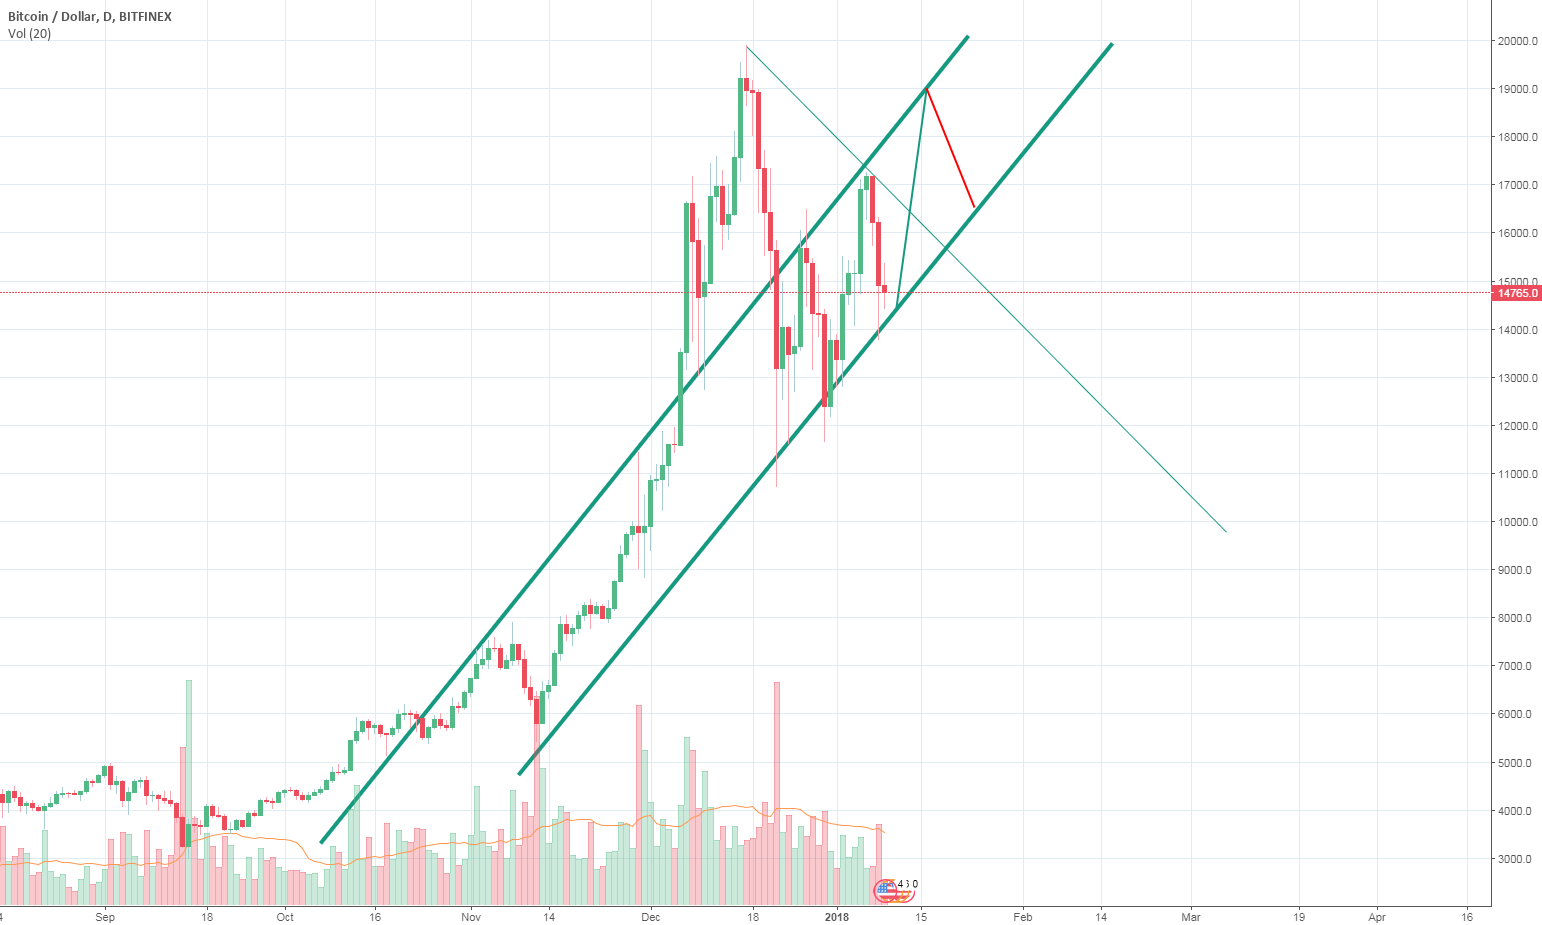 BTC Price Ascending Channel